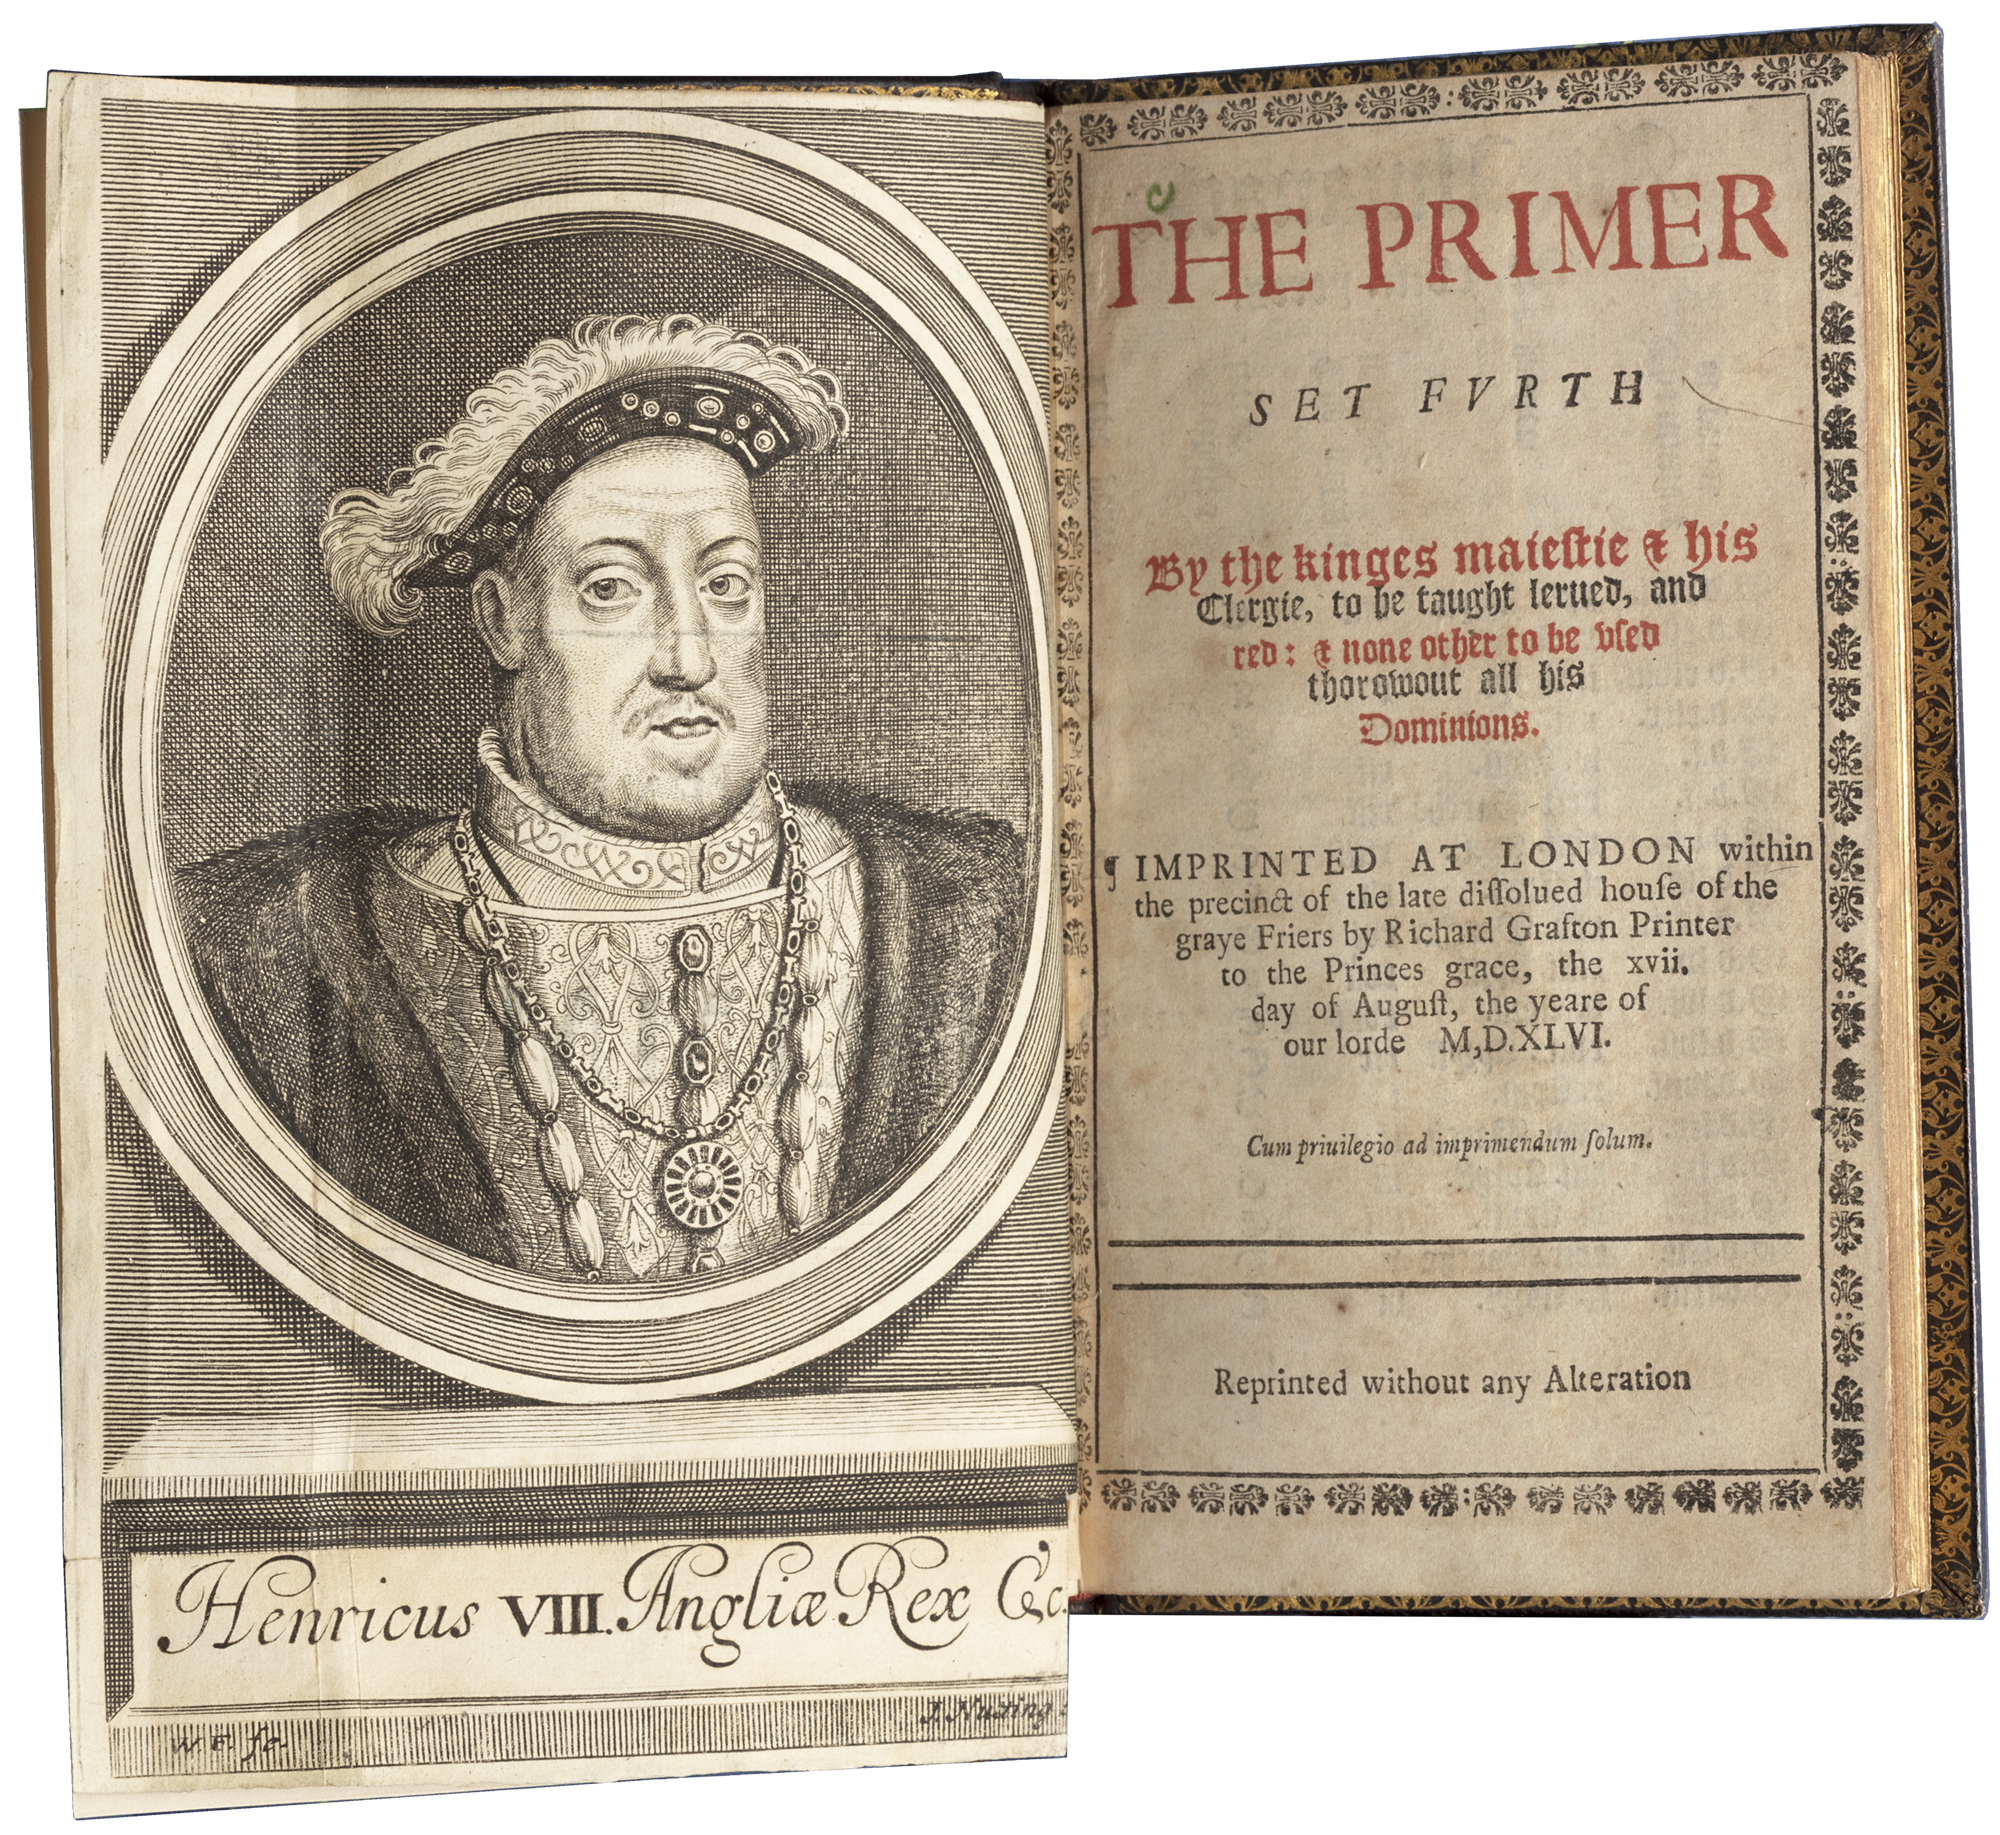 The primer set furth by the kinges maiestie & his Clergie ... 1546 (1710 reprint)